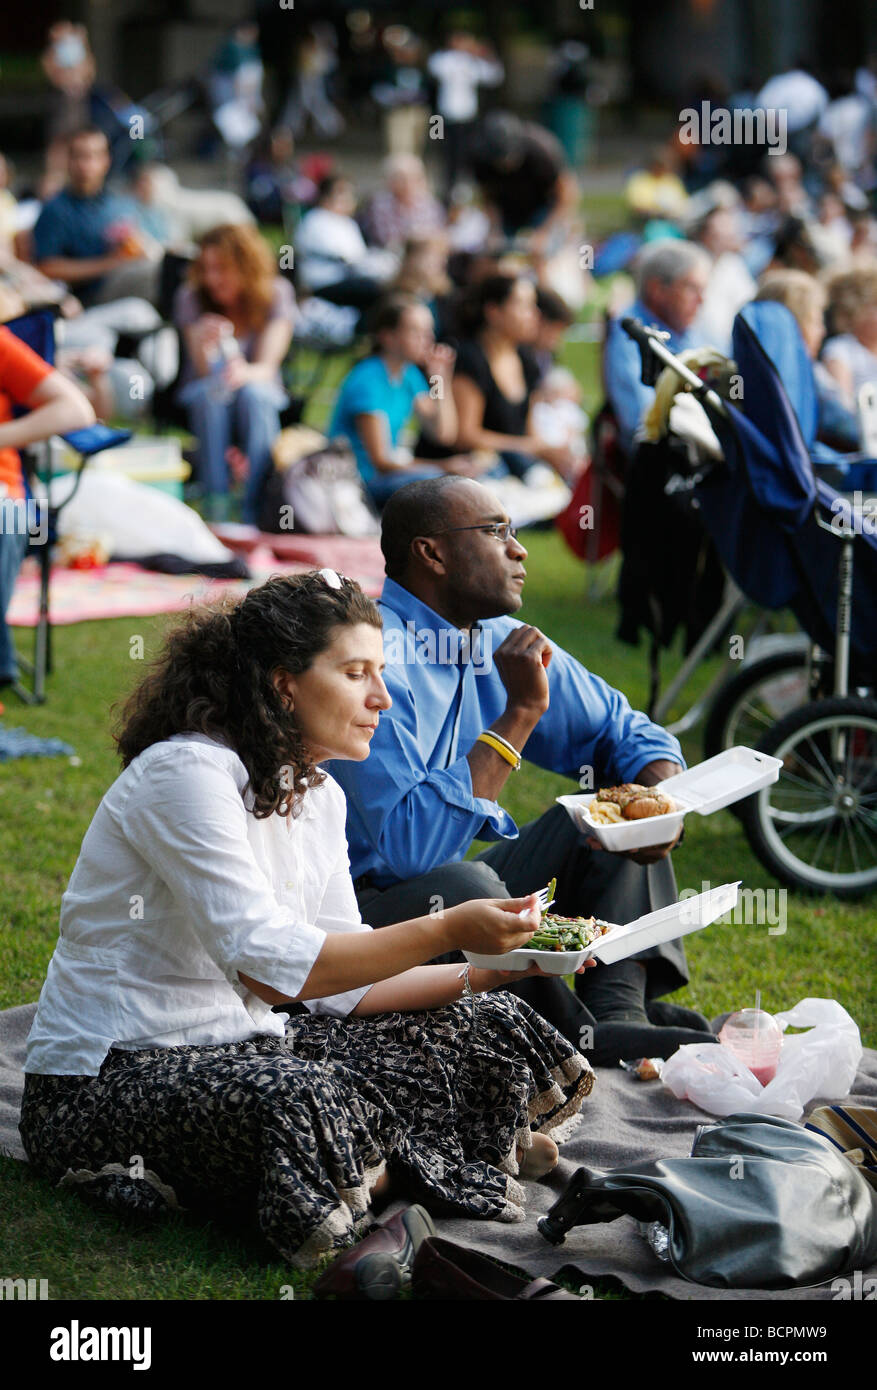 Concert audience at the Hatch Shell on the Esplande, Boston - Stock Image